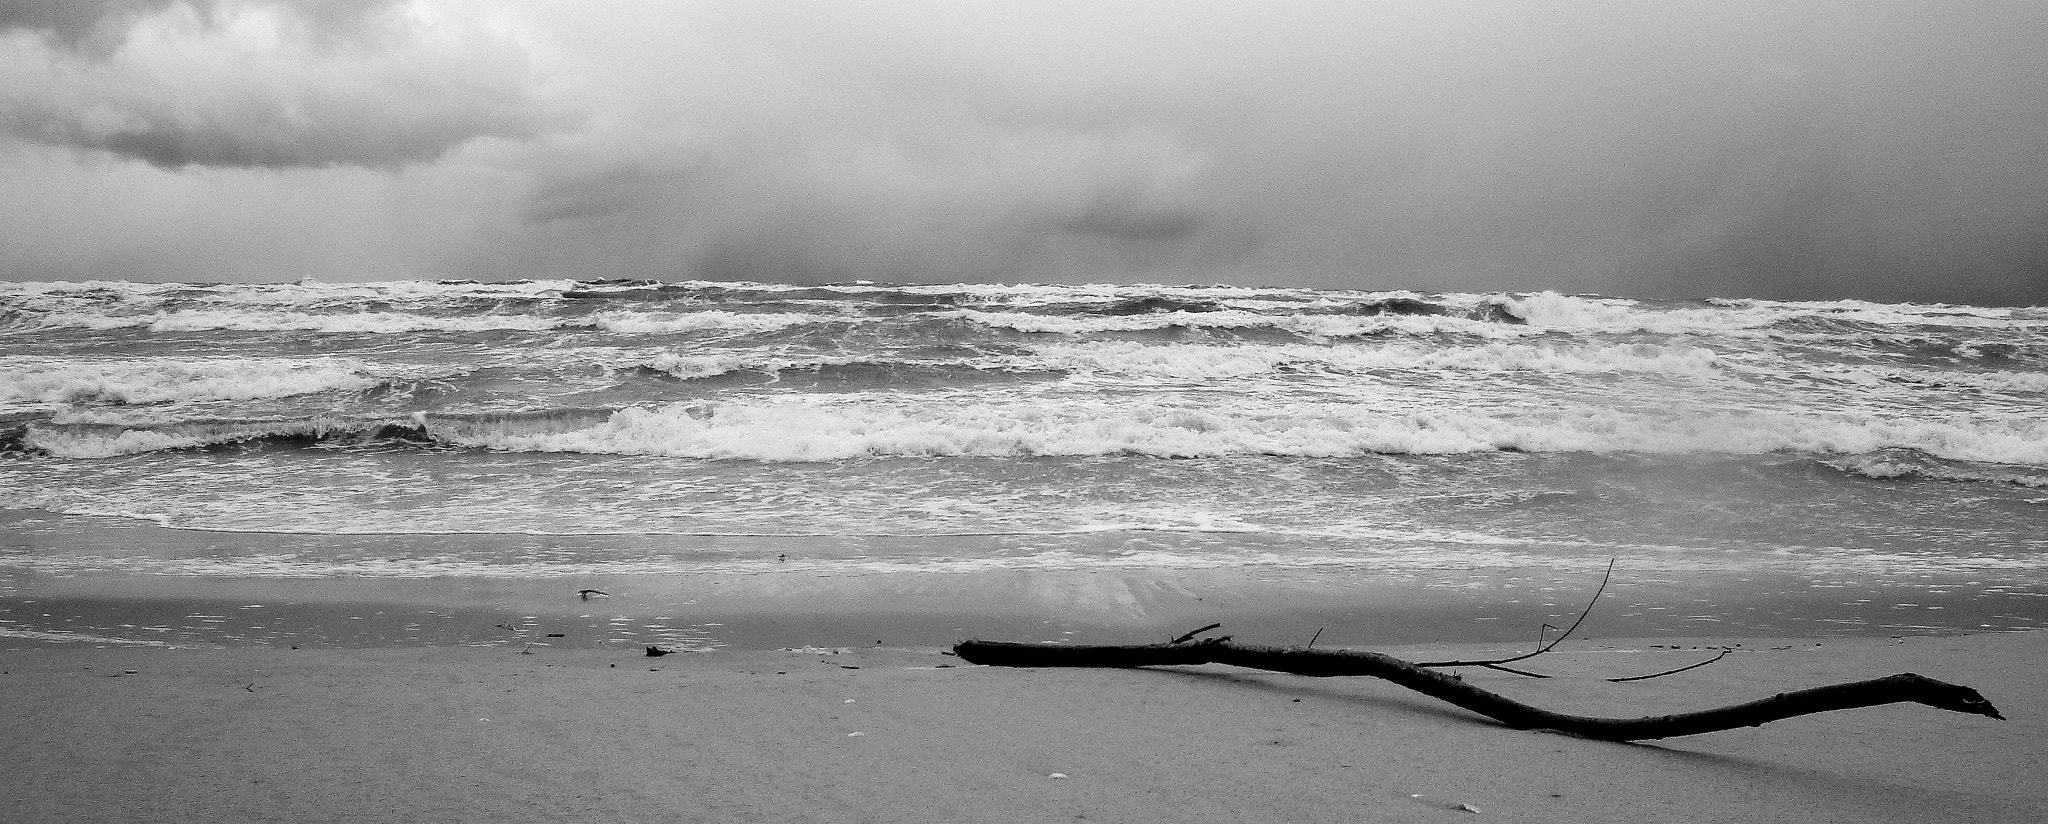 Photograph Baltic sea. by The Krentecy Project  on 500px